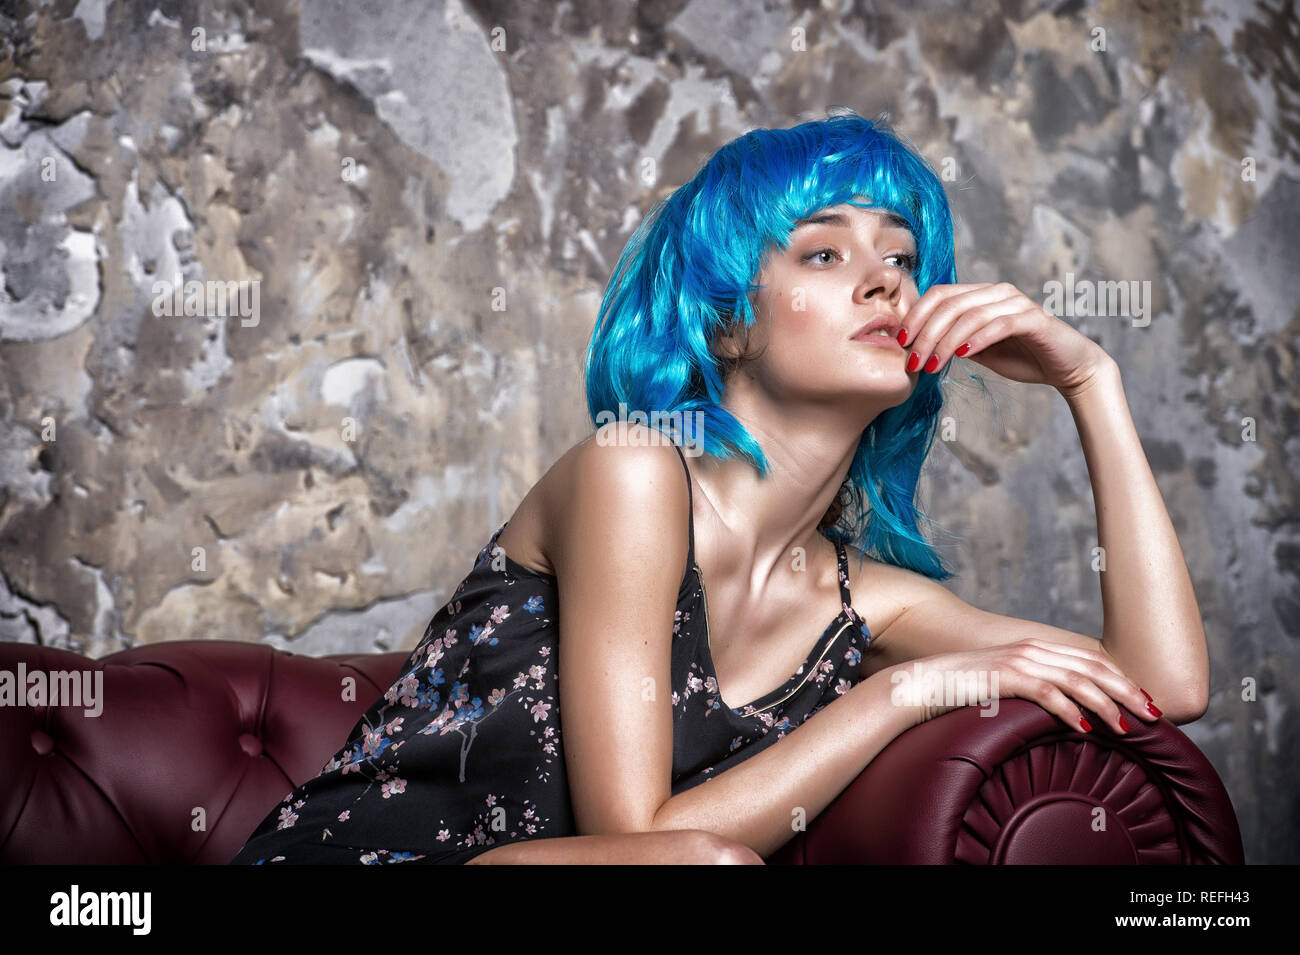 Lady on thoughtful face posing in blue wig, concrete wall background. Woman with blue hair looks unordinary and extraordinary. Freak concept. Lady freak with unordinary appearance. - Stock Image